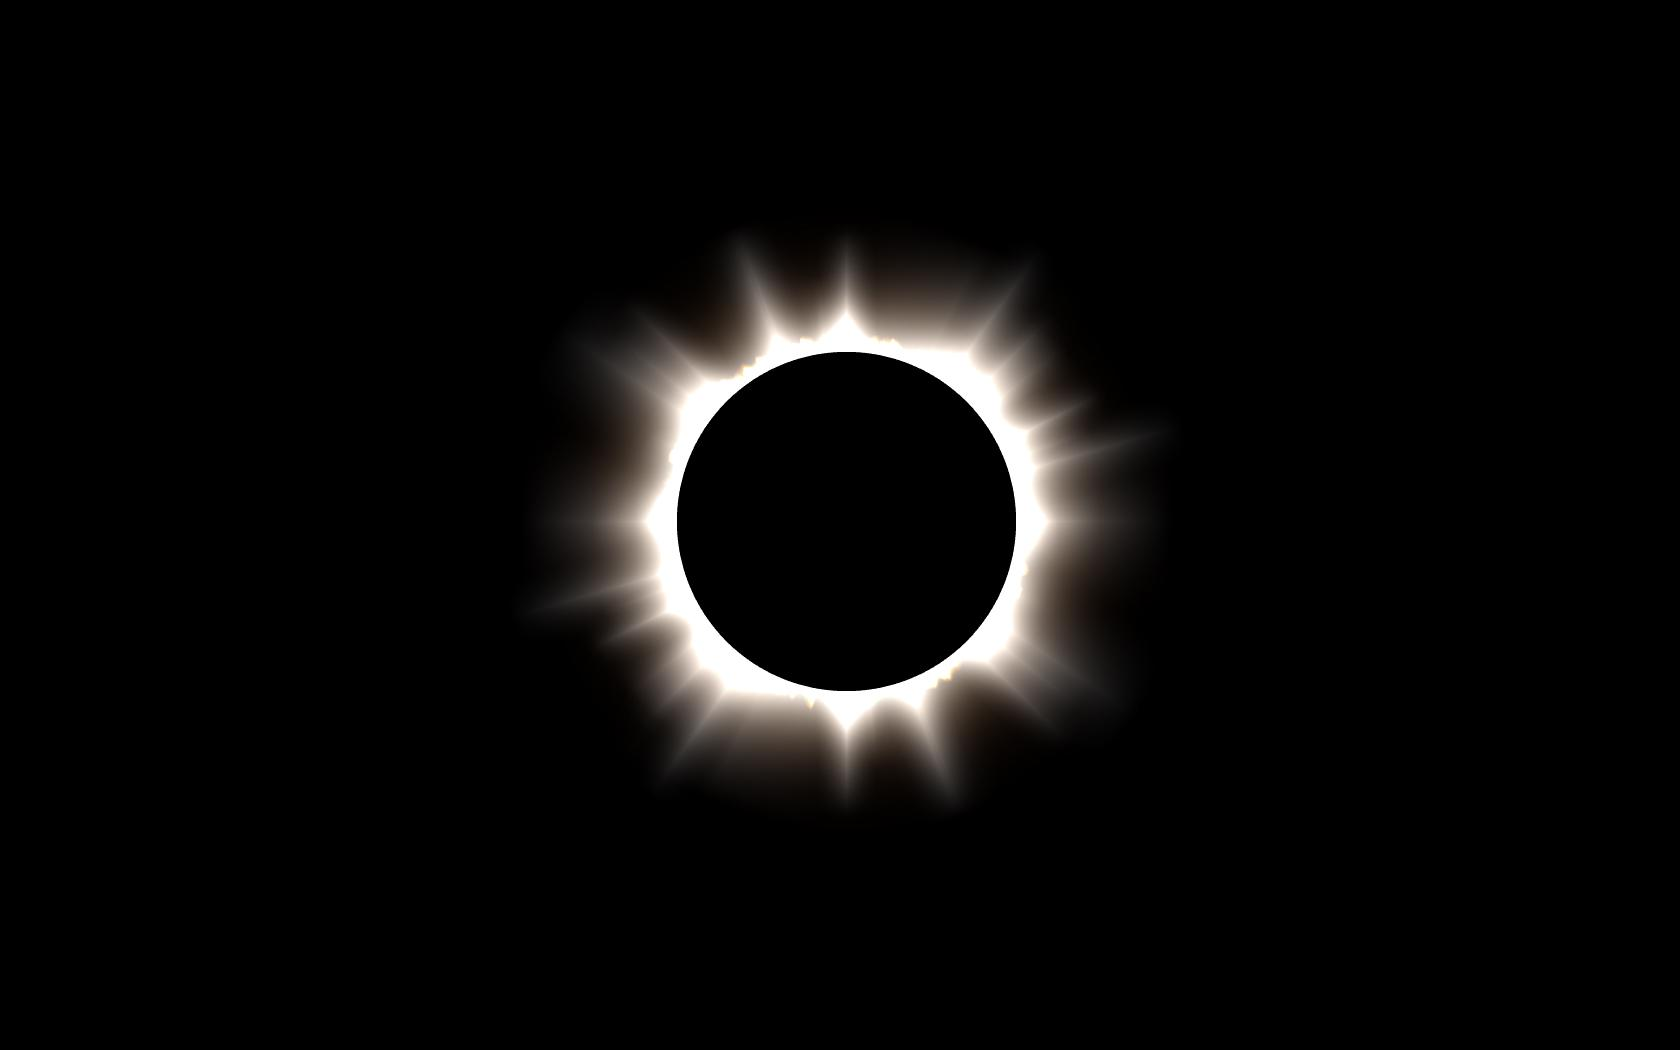 Eclipse Live Backgrounds Wallpapers, HD Wallpapers